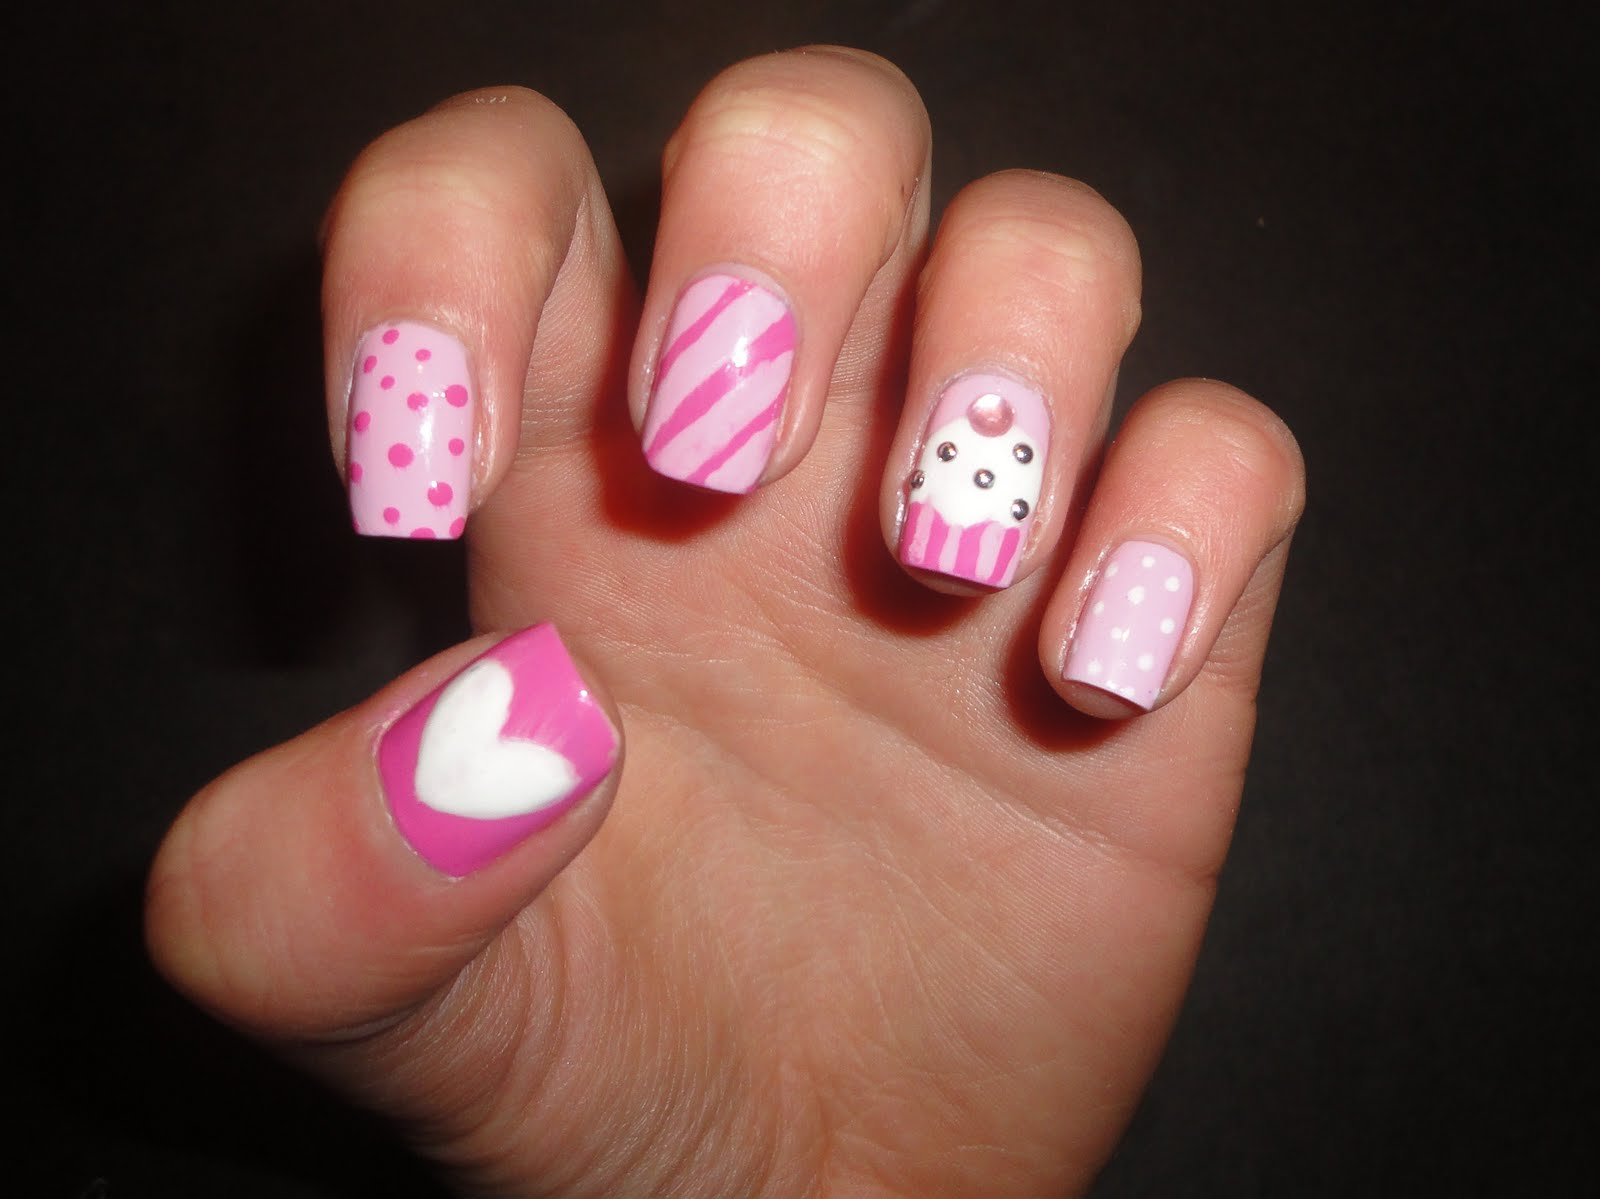 Nail Art Ideas: Bow Ties And Barrettes: HOT NAIL DESIGNS